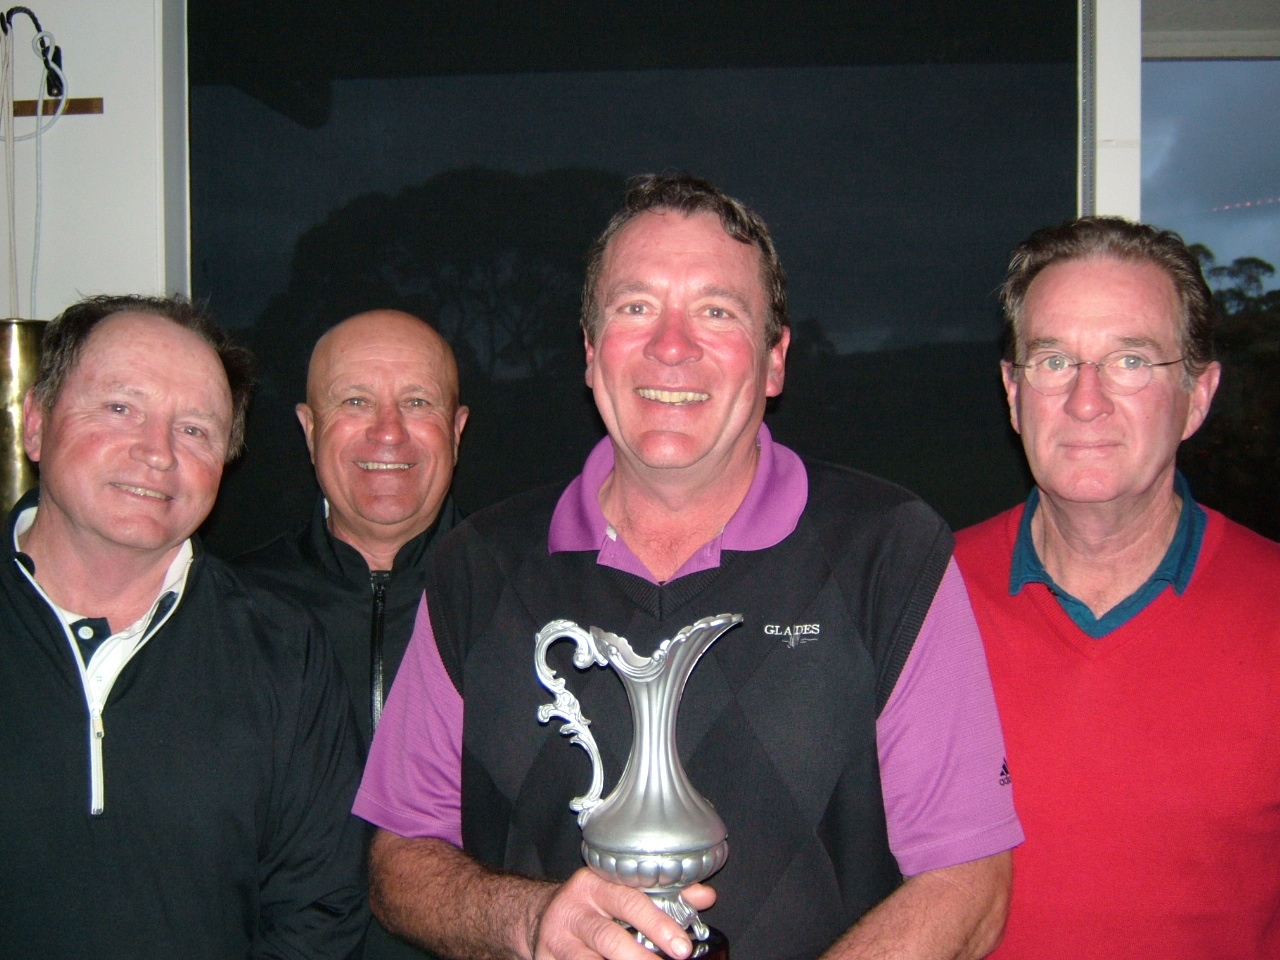 Winners from Victor Motors & Auto Gas (L-R   A. TAPP, J. GRIFFEN, L. DRUMMOND, K. TAYLOR).